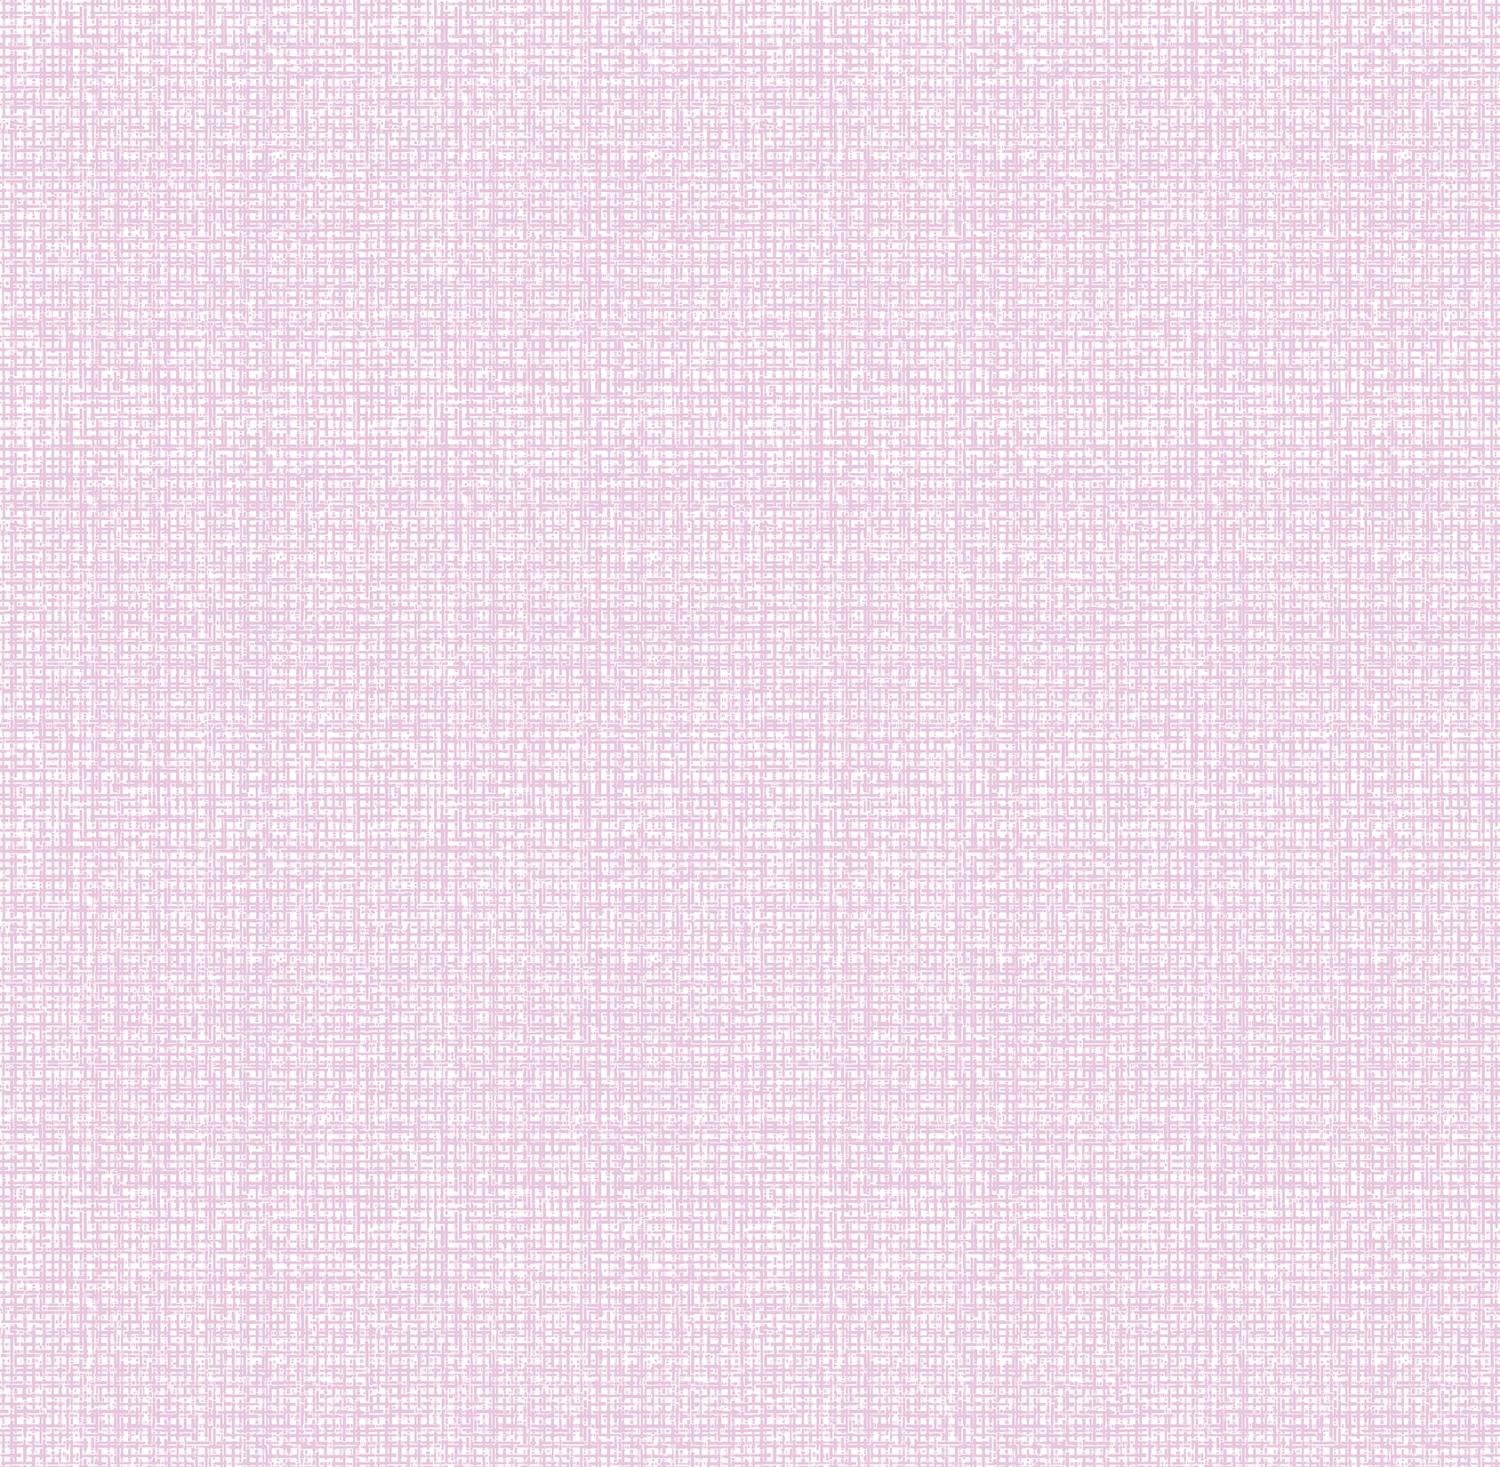 Color Weave #06 Light Lavender